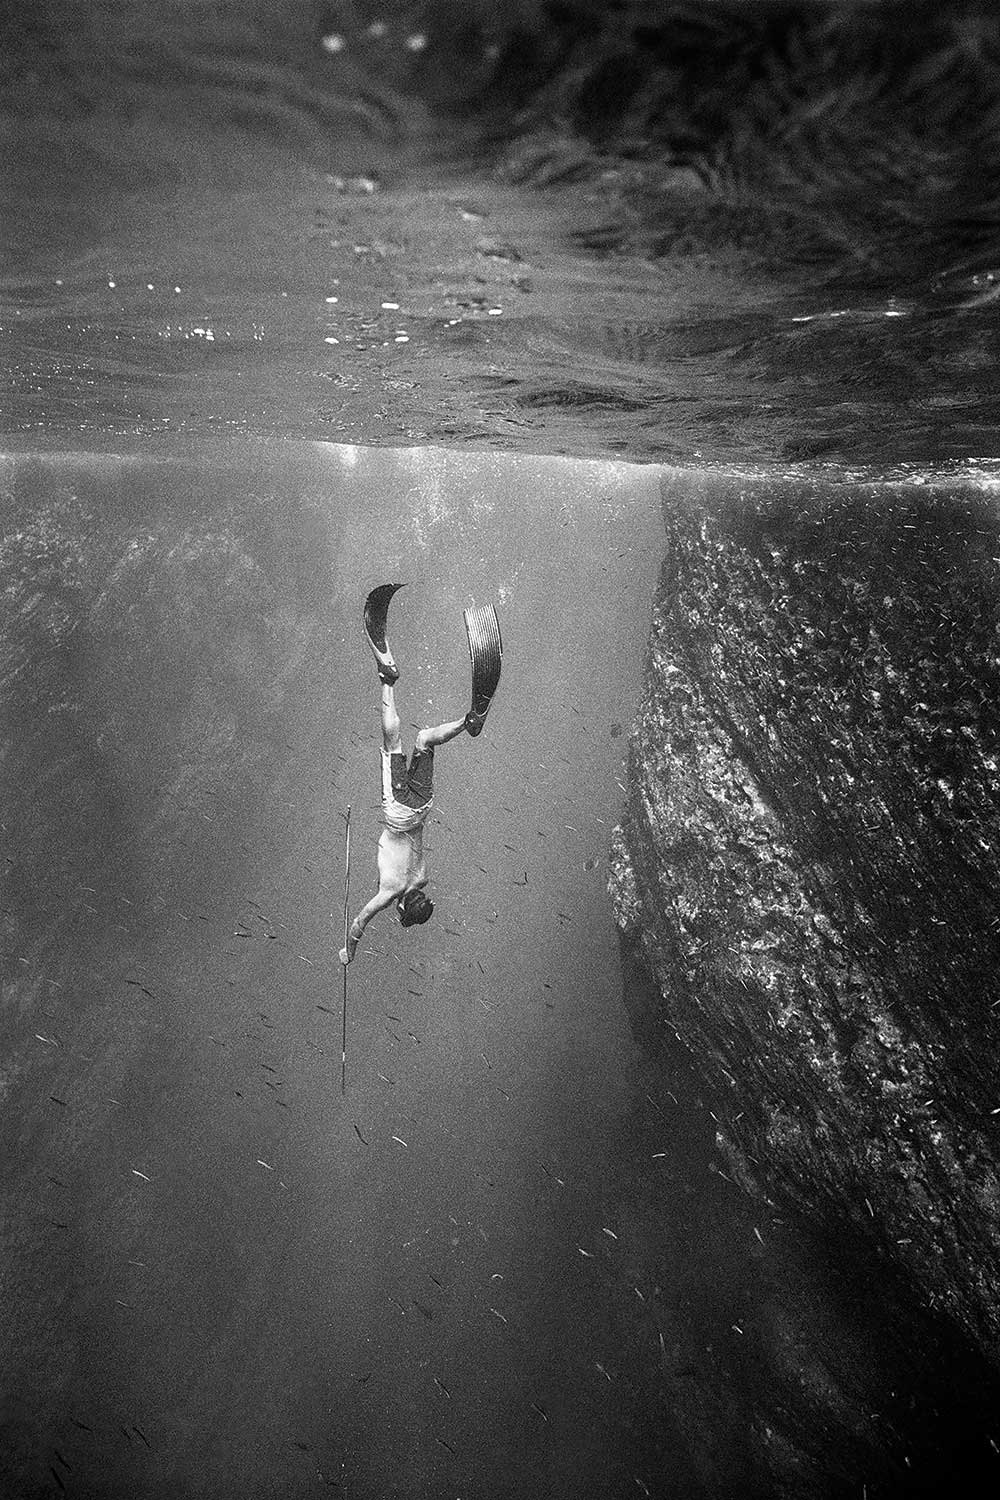 black and white photo of Randy Kosaki spearfishing underwater in ocean